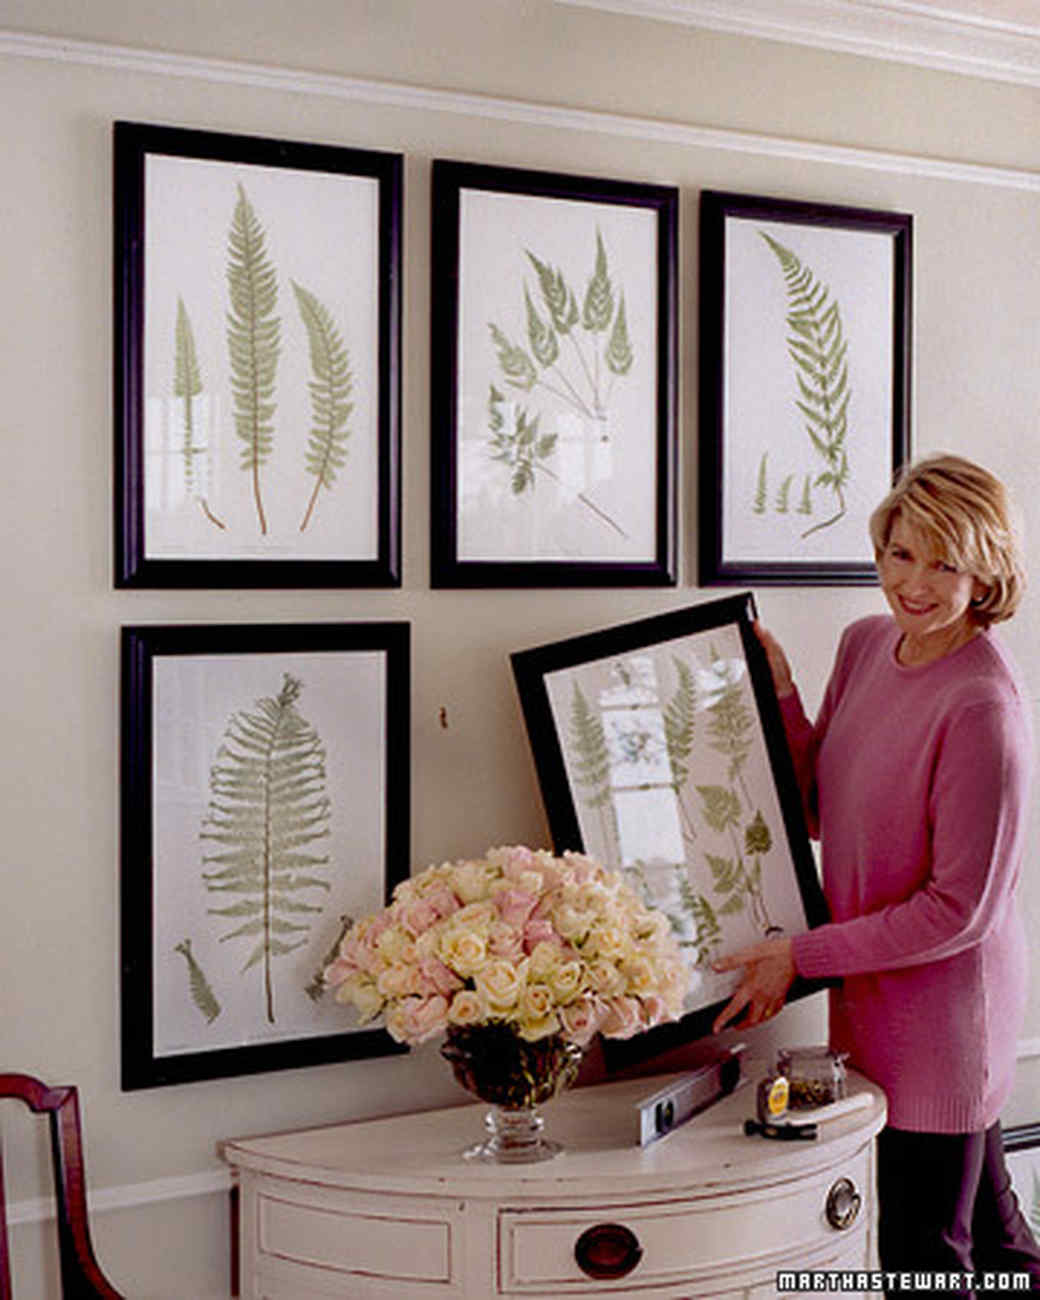 How To Hang Multiple Pictures On Wall photo projects on display | martha stewart